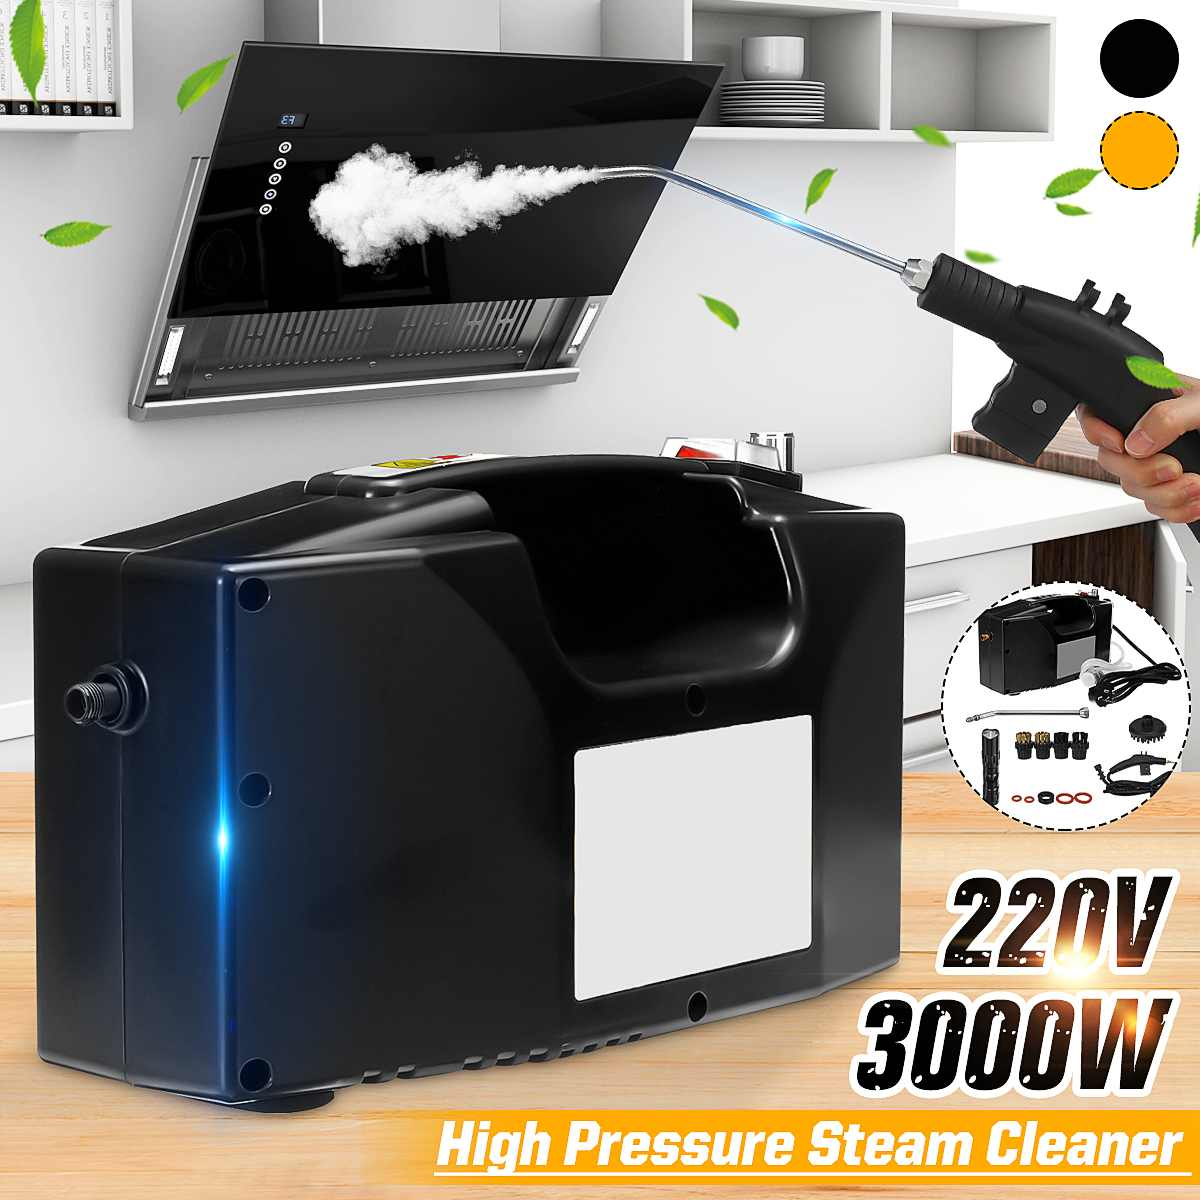 220V 3000W High Pressure Steam Cleaner for Household Kitchen High Temperature Cleaning Machine Cleaner Sanitizer Disinfector